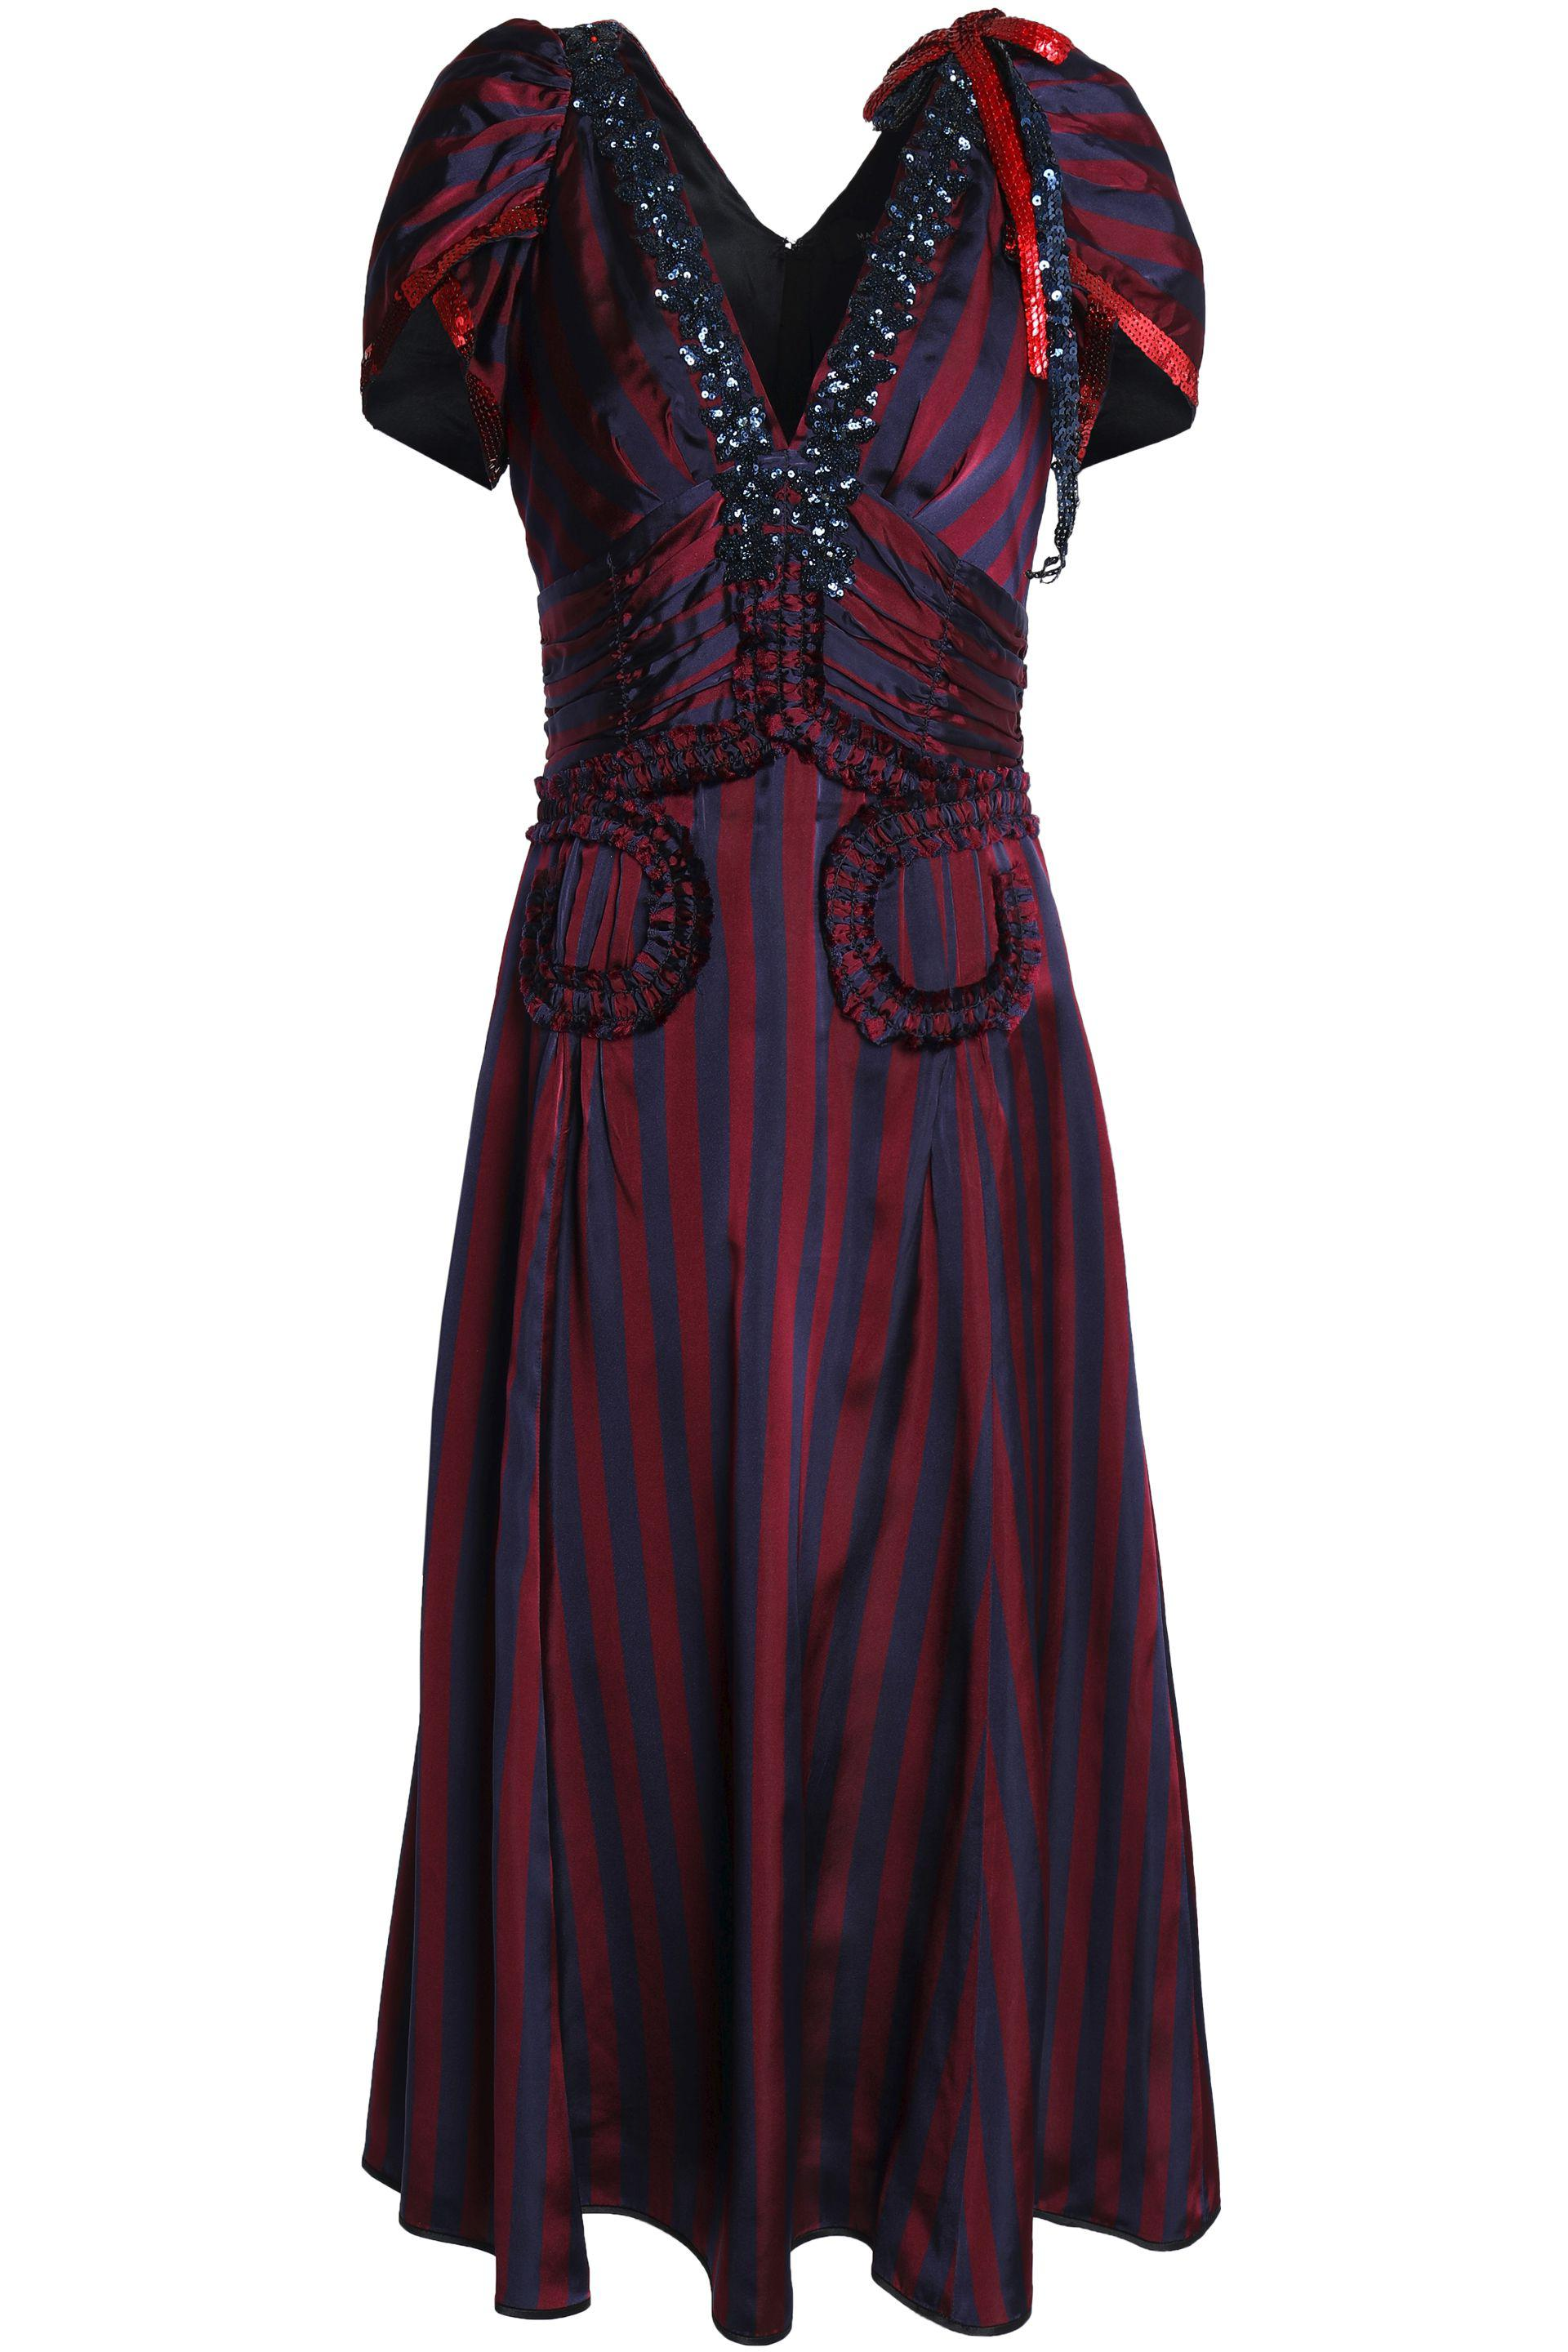 Marc Jacobs Woman Ruffle-trimmed Embellished Striped Satin Midi Dress Claret Size 2 Marc Jacobs Buy For Sale Outlet Store Free Shipping Low Cost Cheap Low Price Collections Cheap Price mdAZXGEJd